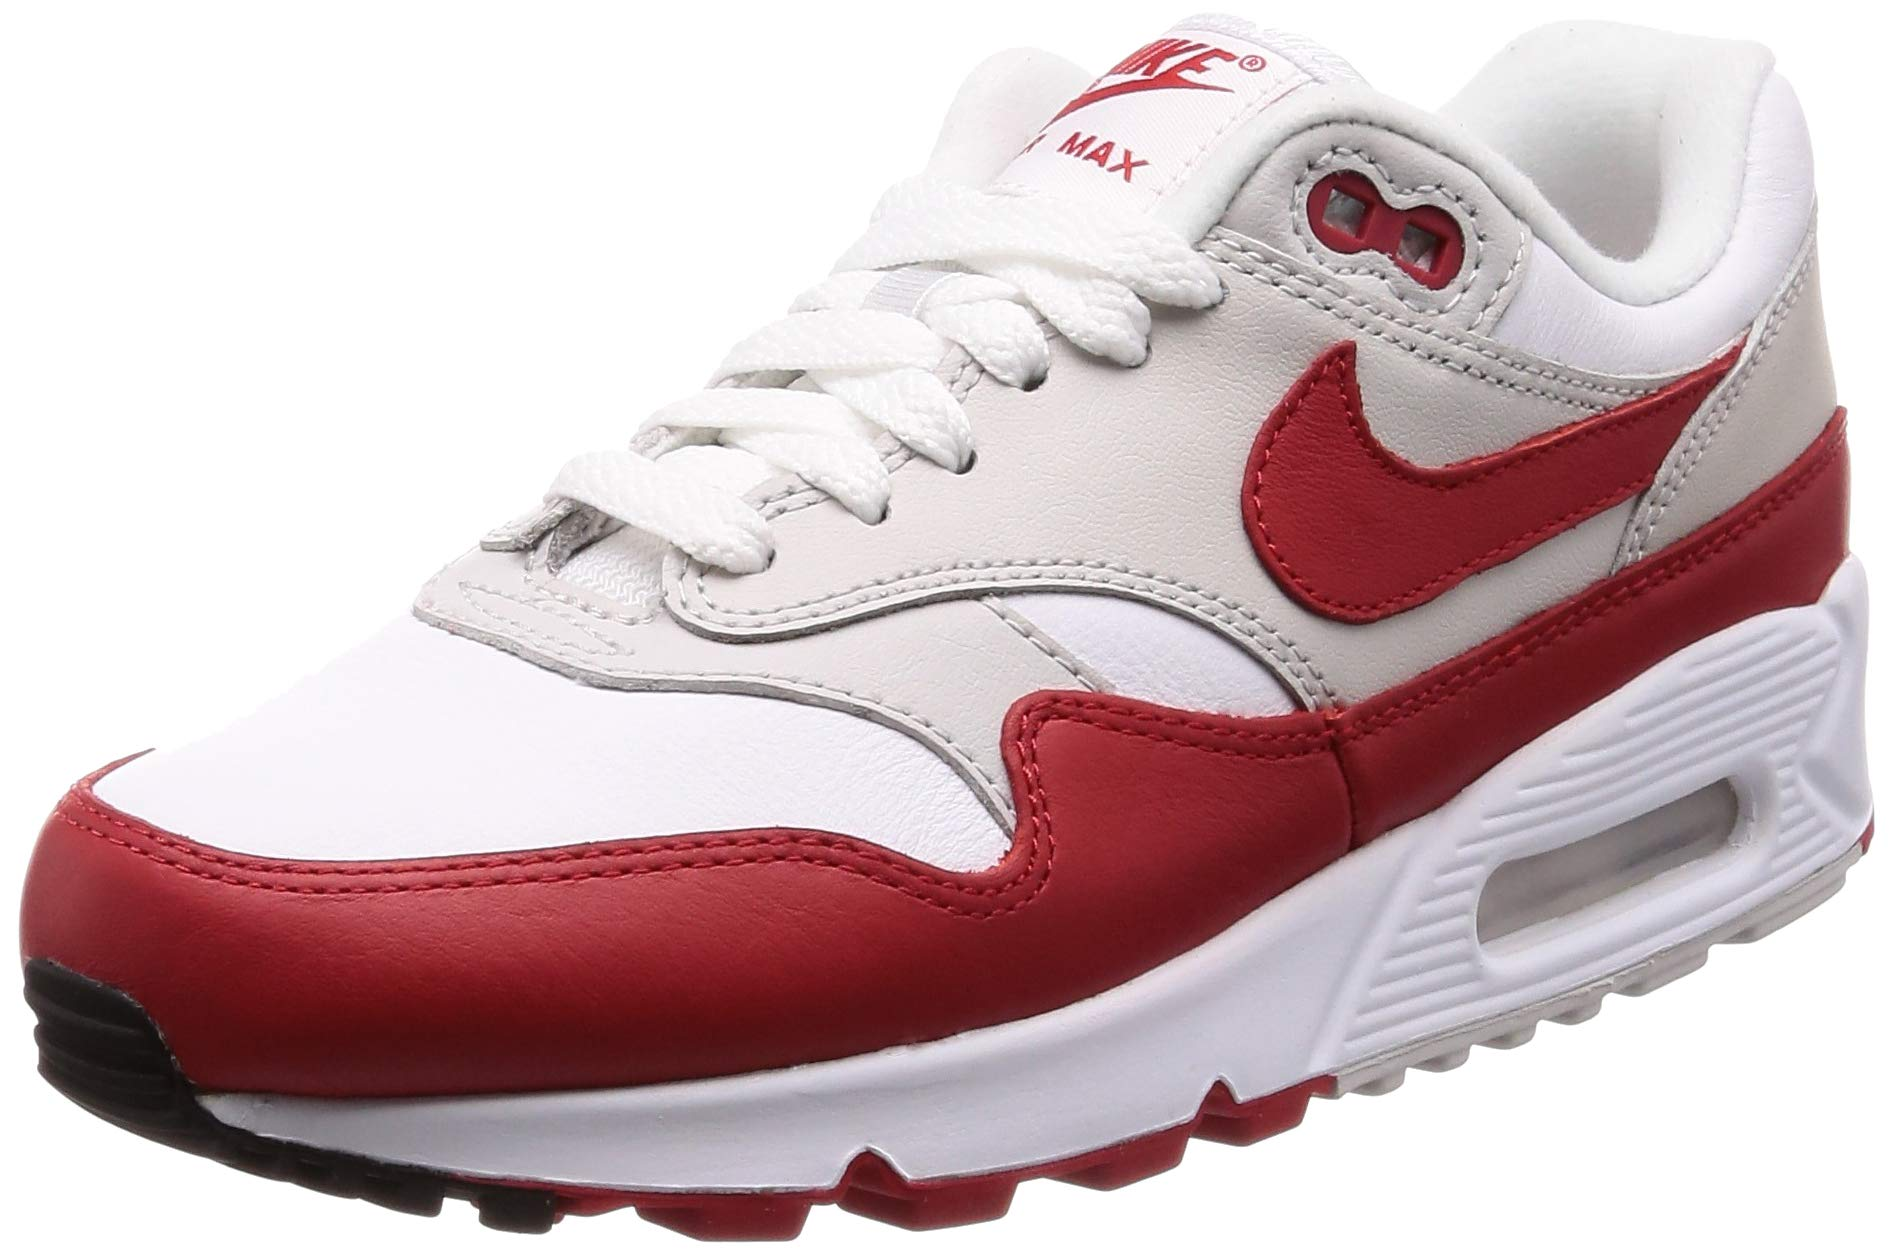 Nike Air Max 90/1 Womens Style: AQ1273-100 Size: 8.5 White/University Red